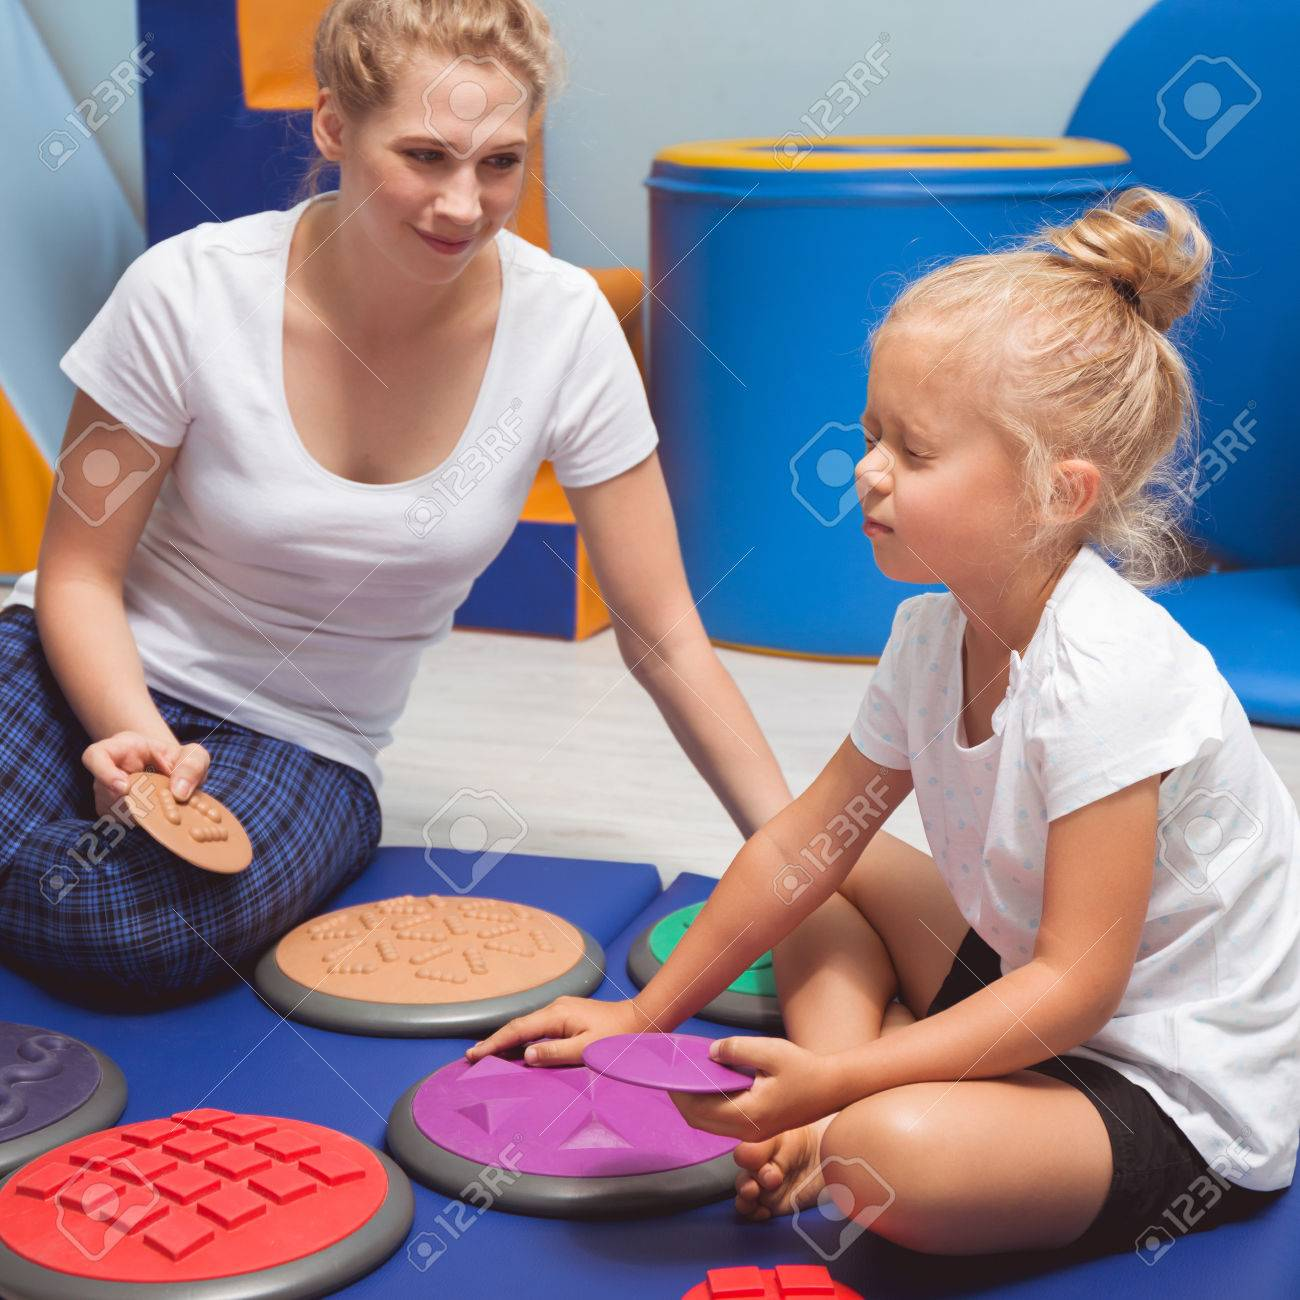 Child touching with closed eyes sensory integration equipment with occupational therapist - 70962721